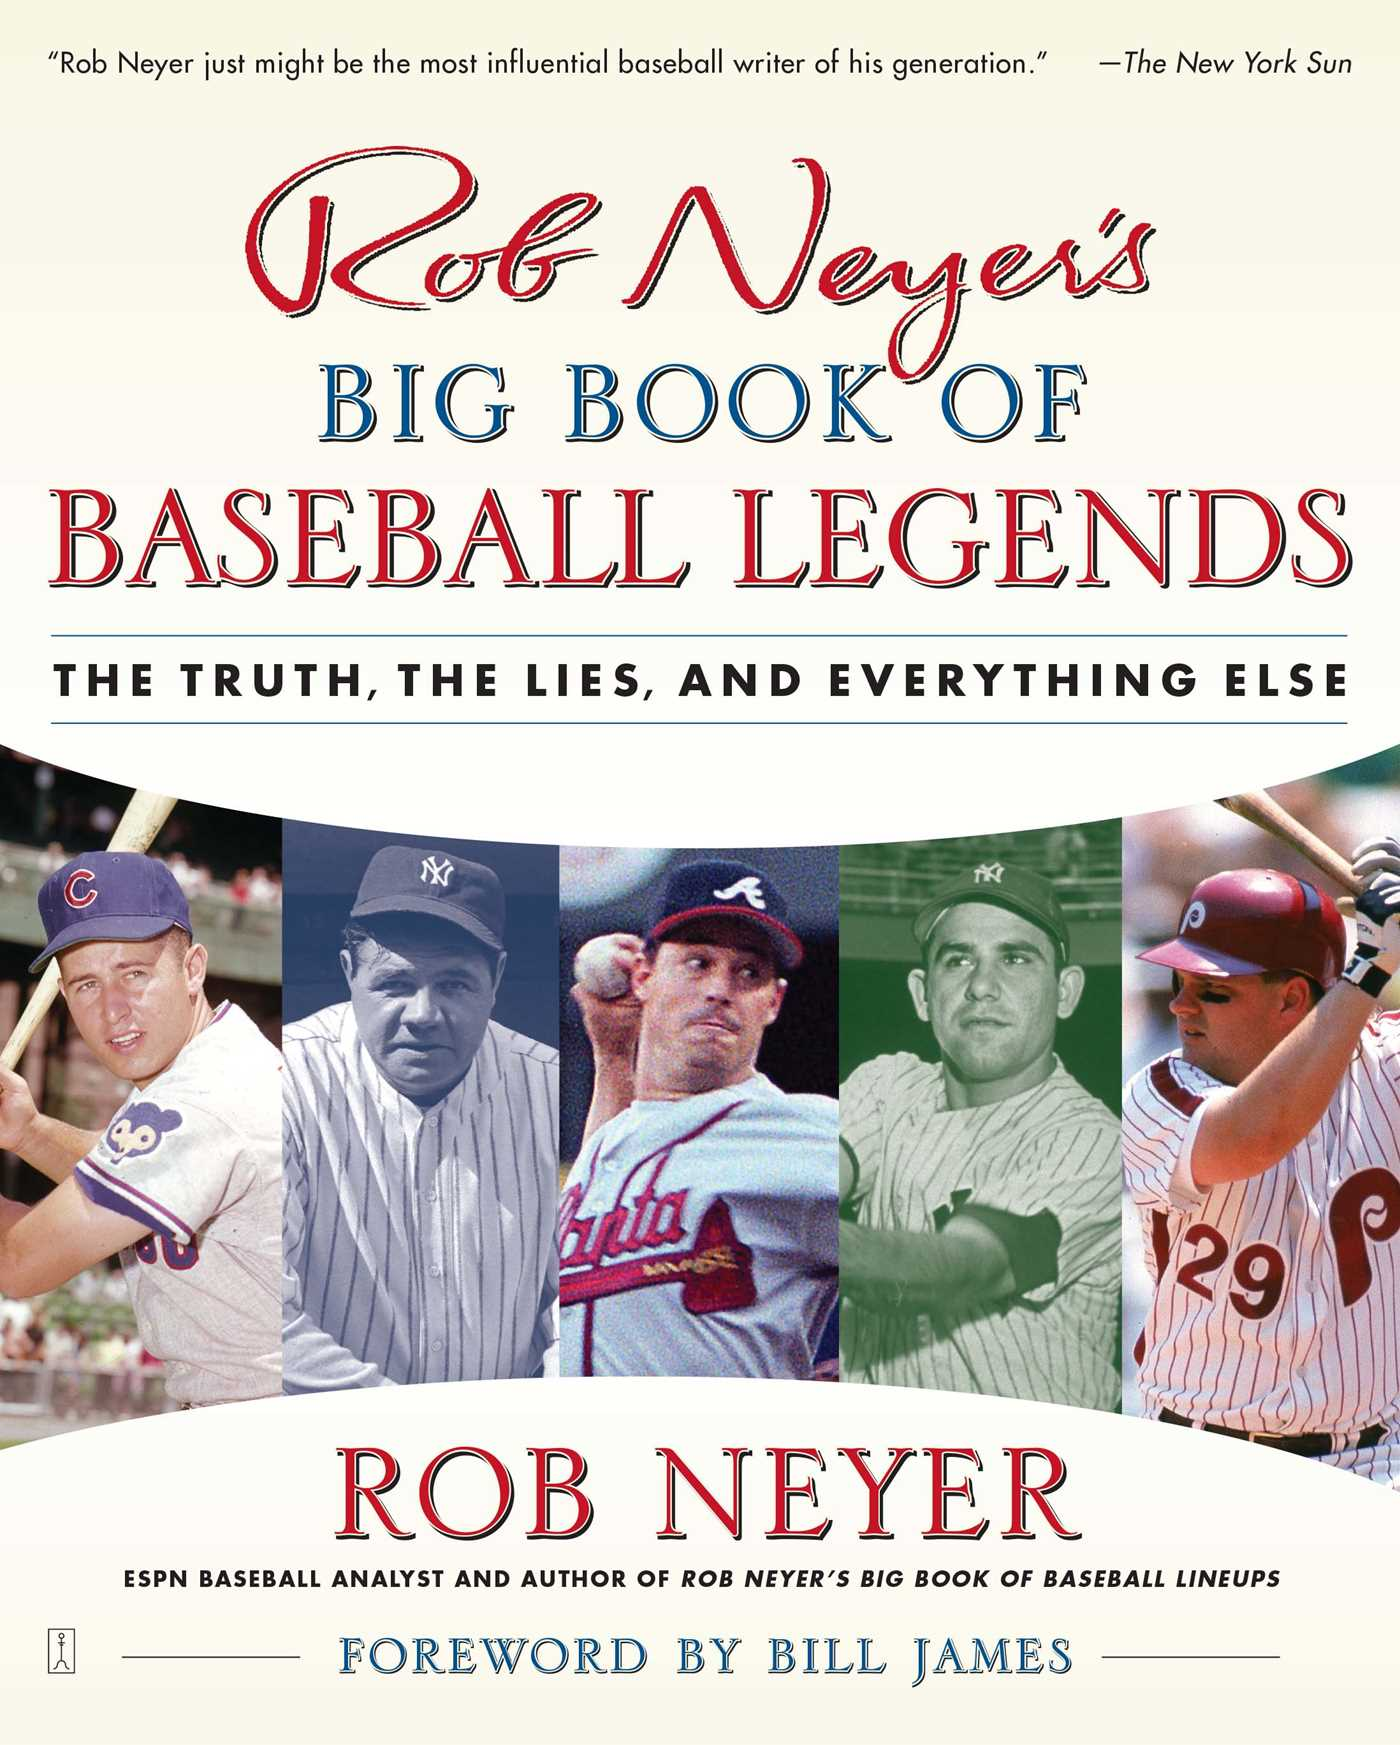 Rob-neyers-big-book-of-baseball-legends-9780743284905_hr